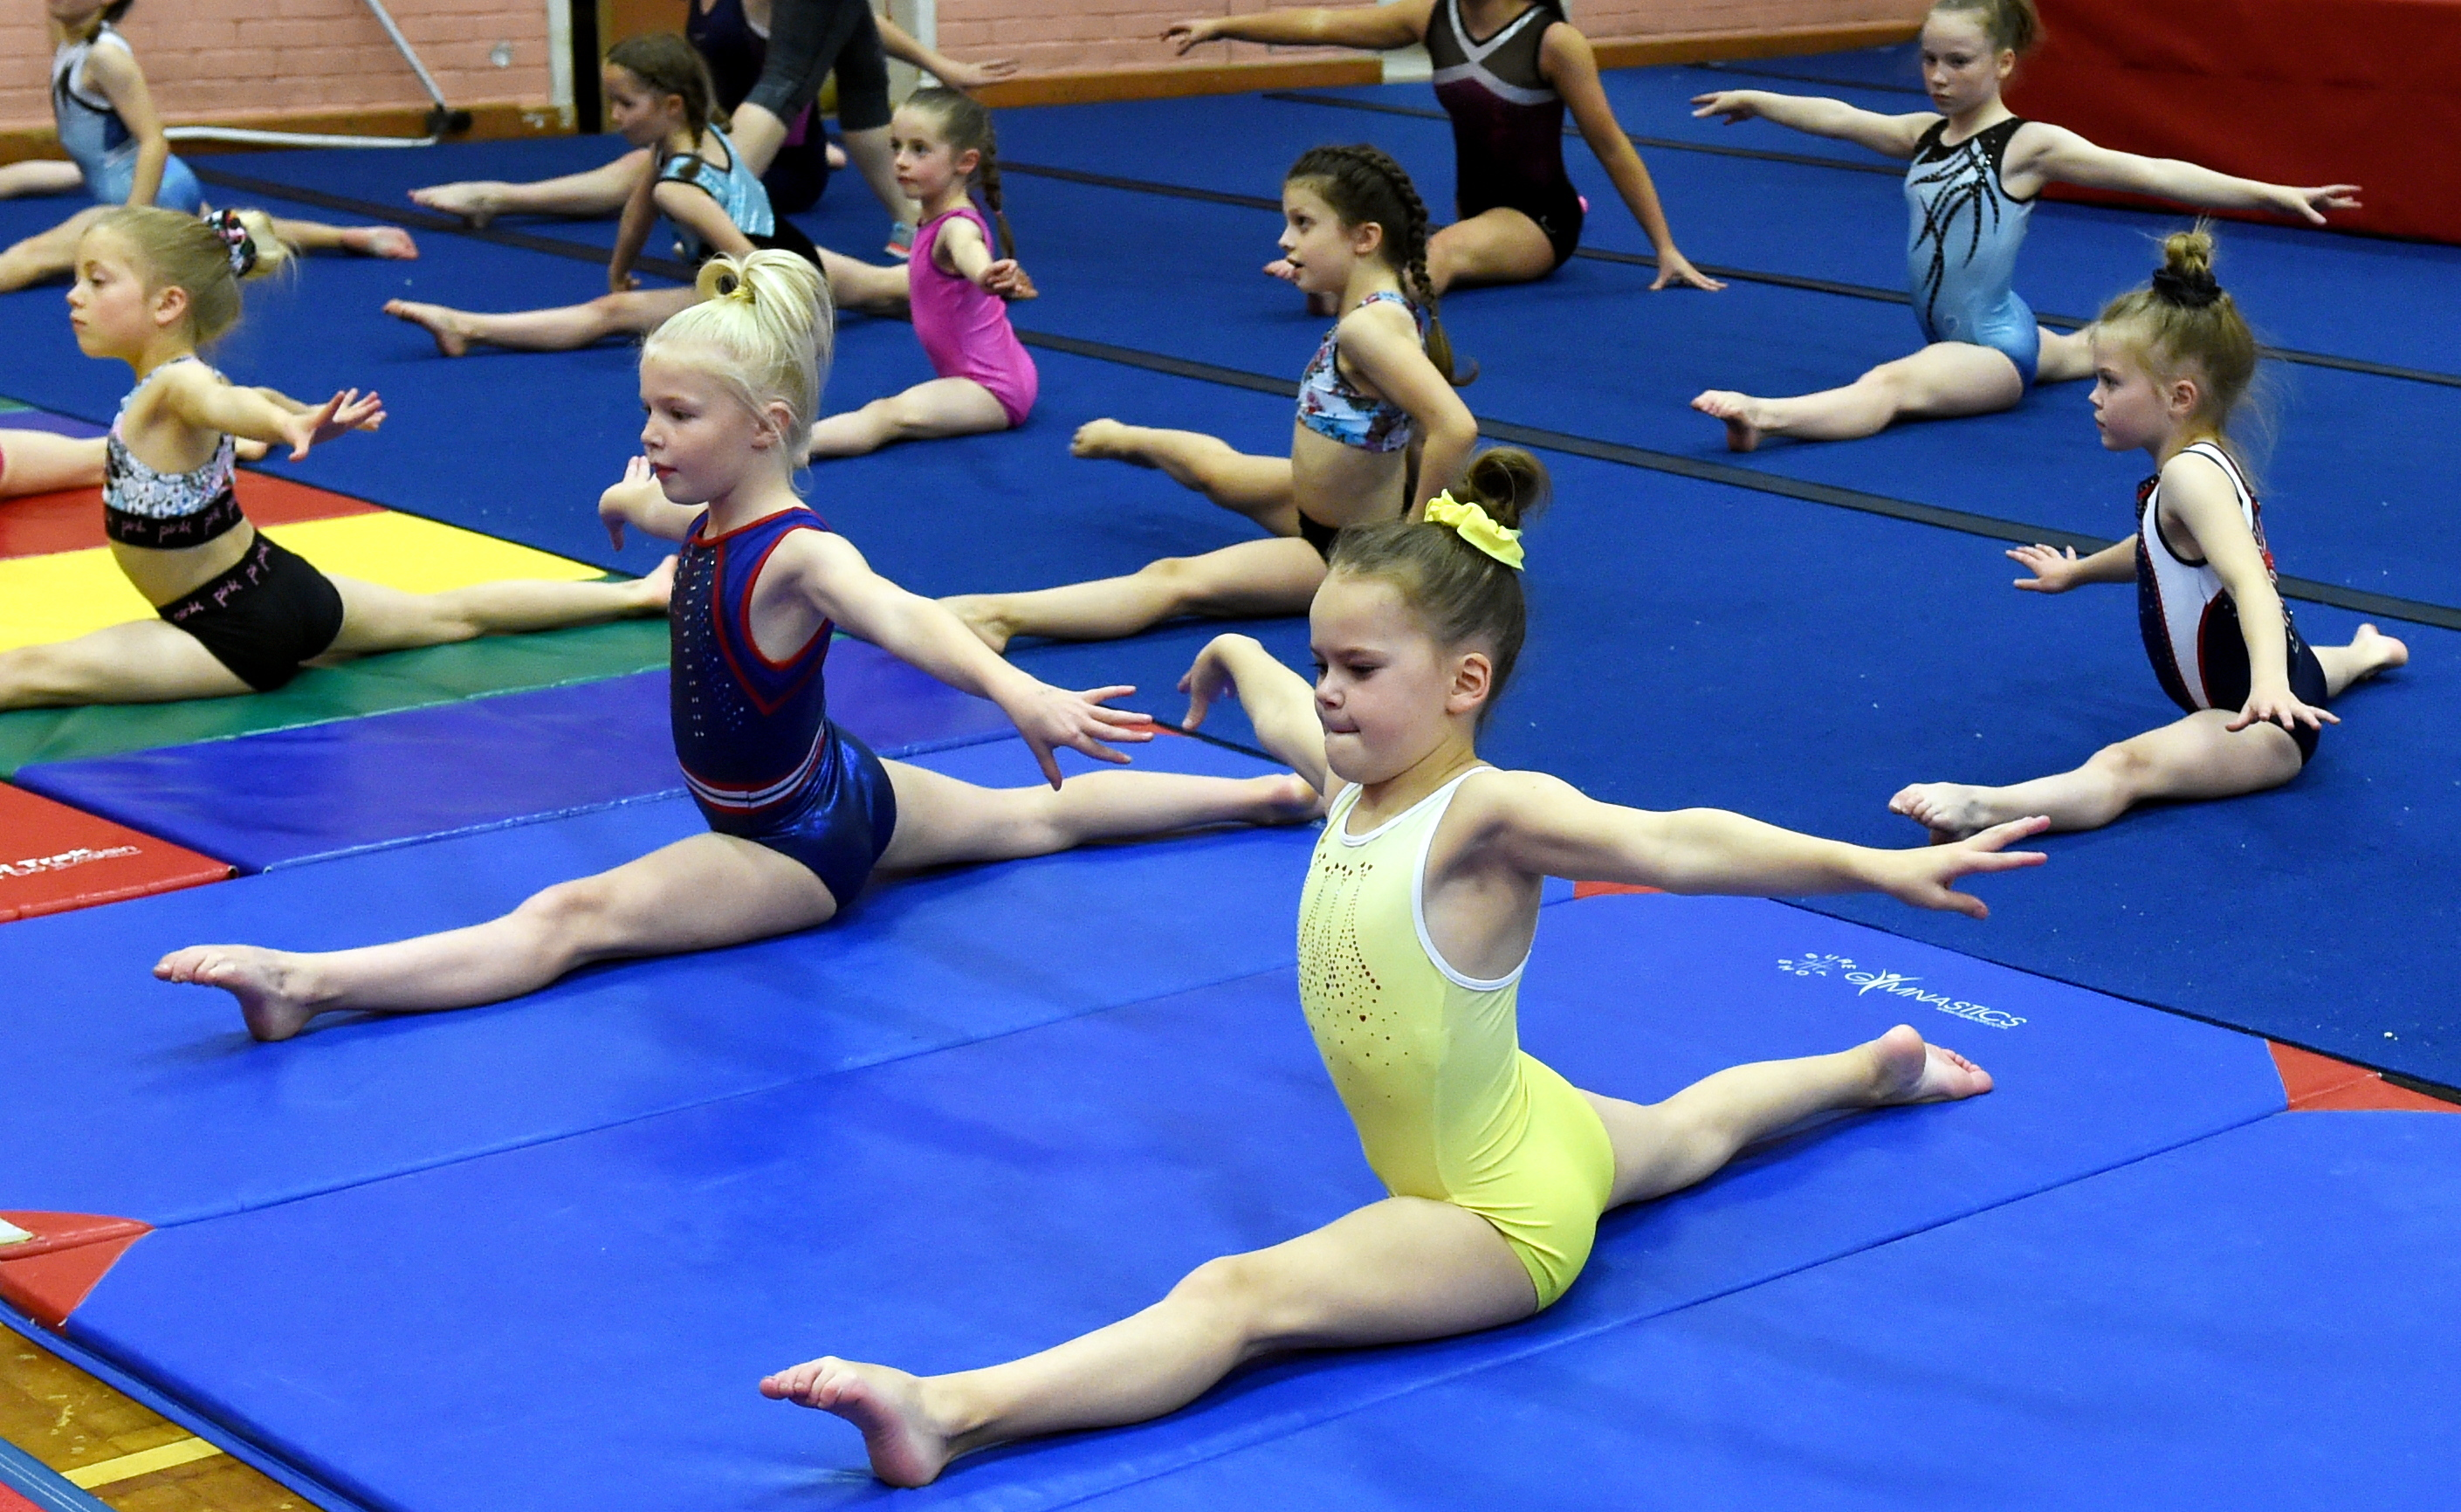 The Garioch Gymnastics club are trying to open their own premises. Picture by Jim Irvine